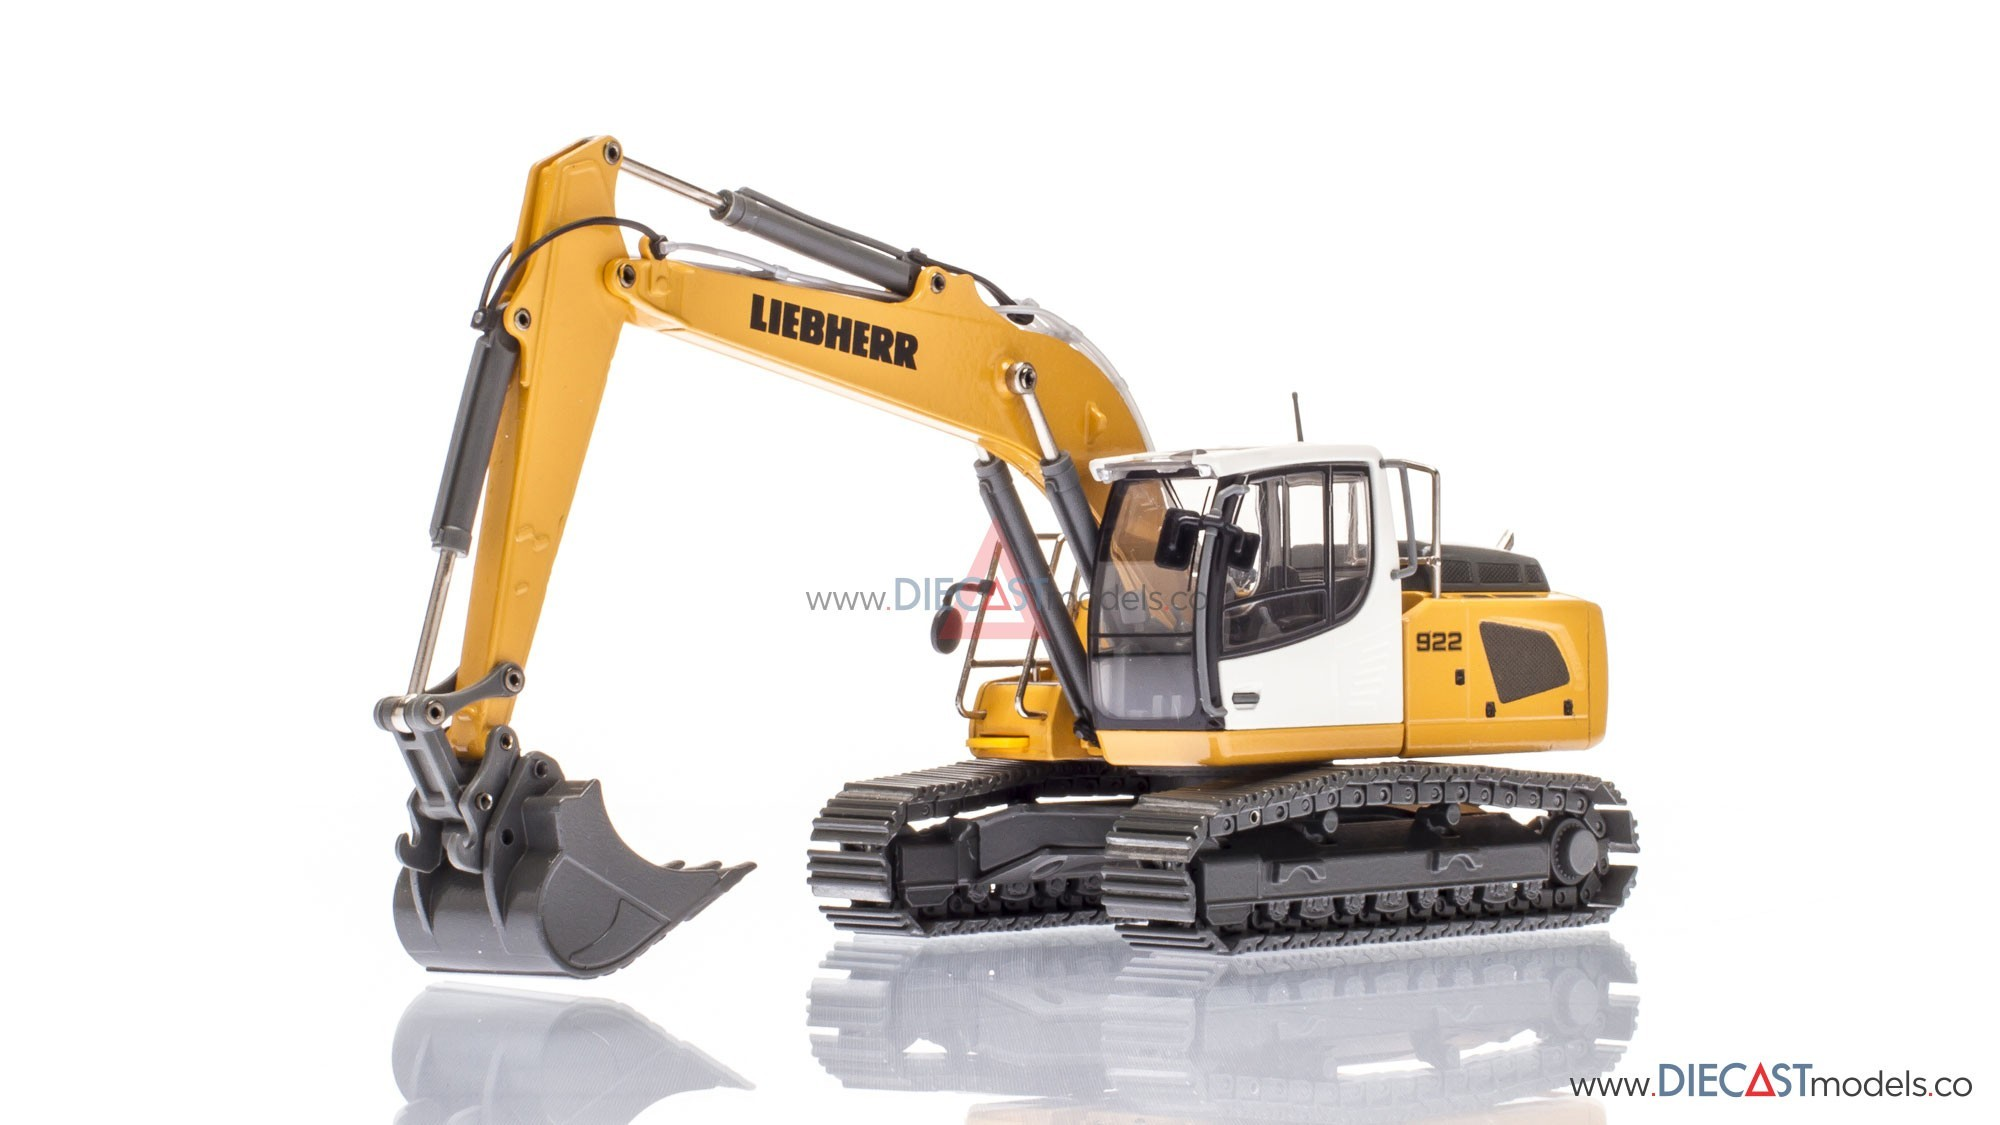 liebherr r 922 crawler excavator model shop. Black Bedroom Furniture Sets. Home Design Ideas